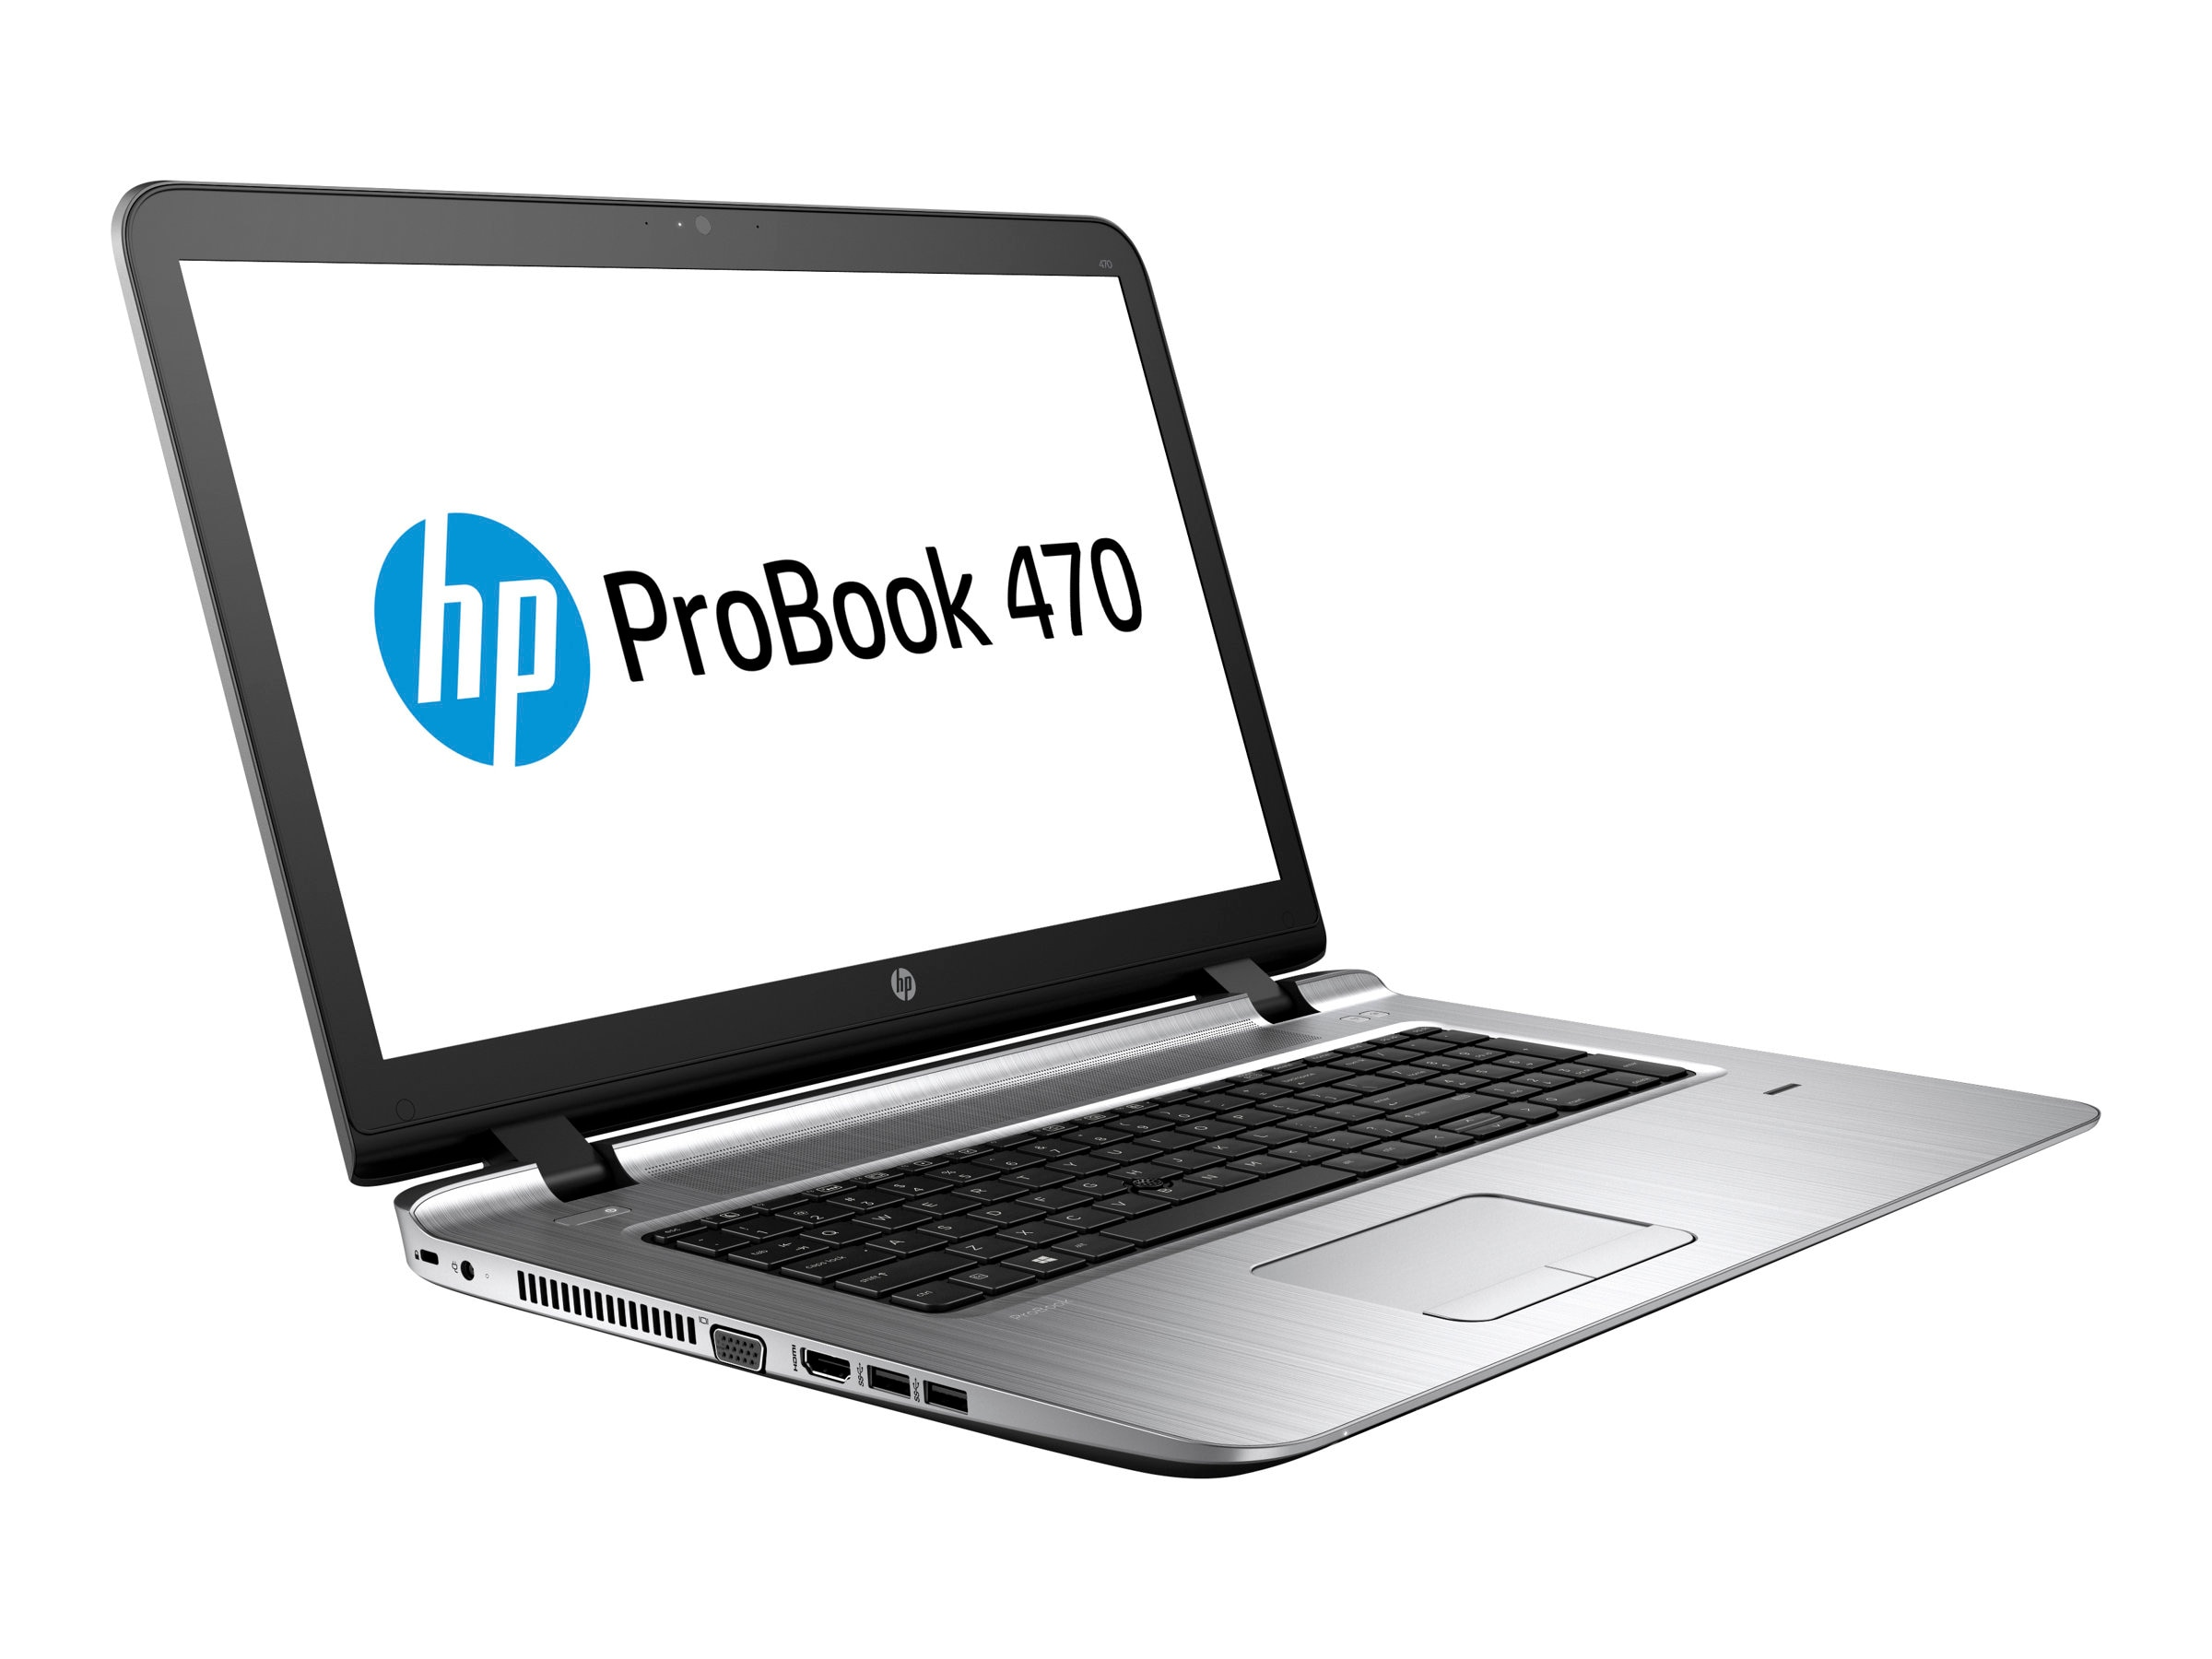 HP EliteBook 470 G3 2.5GHz Core i7 17.3in display, W0S58UT#ABA